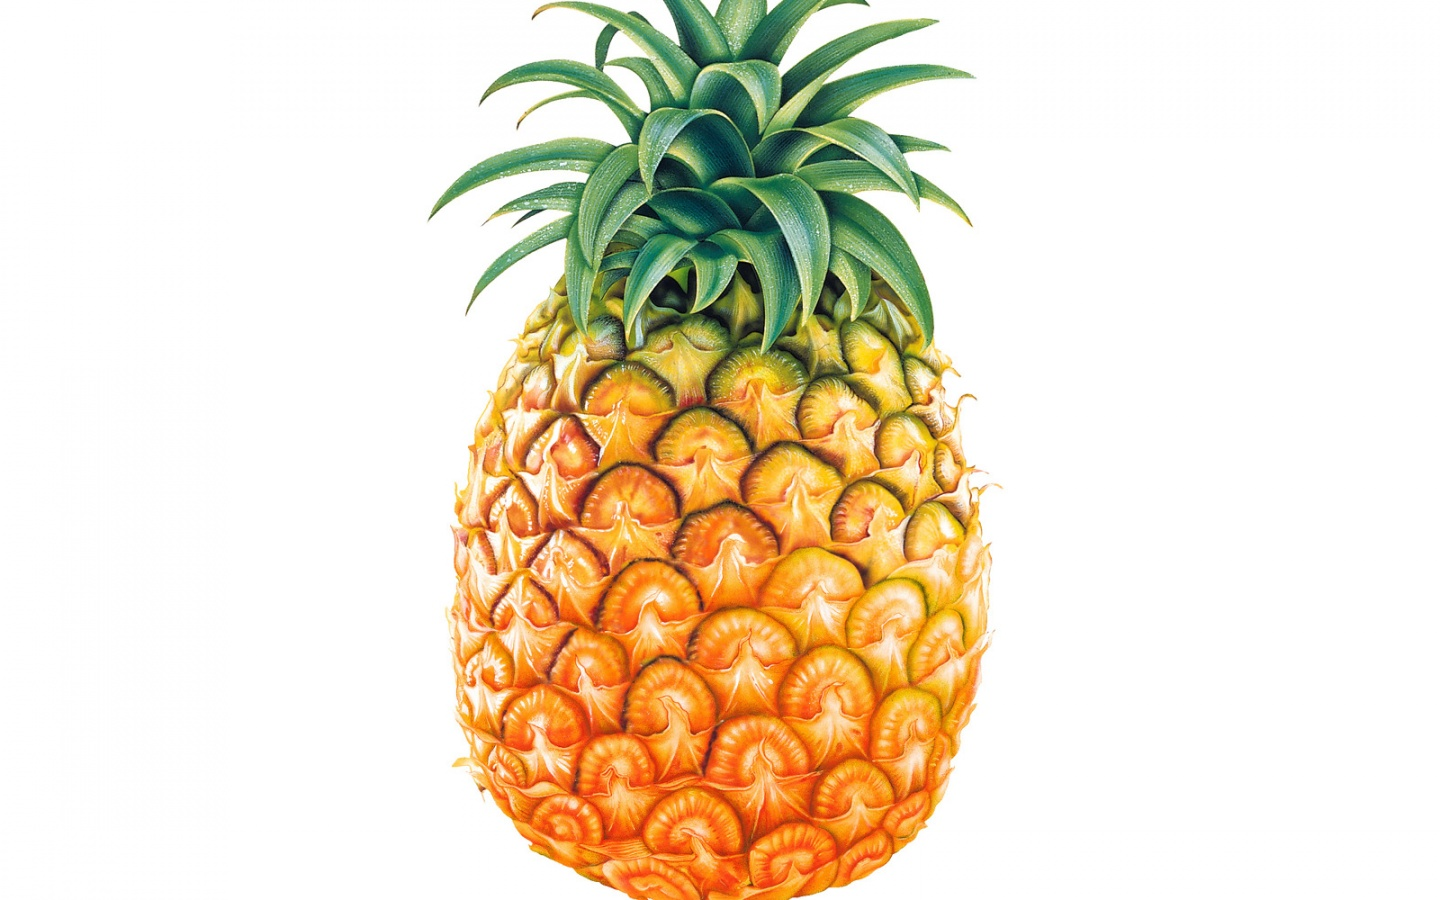 Amazing Wallpaper Mac Pineapple - tasty-pineapple_wallpapers_12982_1440x900  You Should Have_45895.jpg